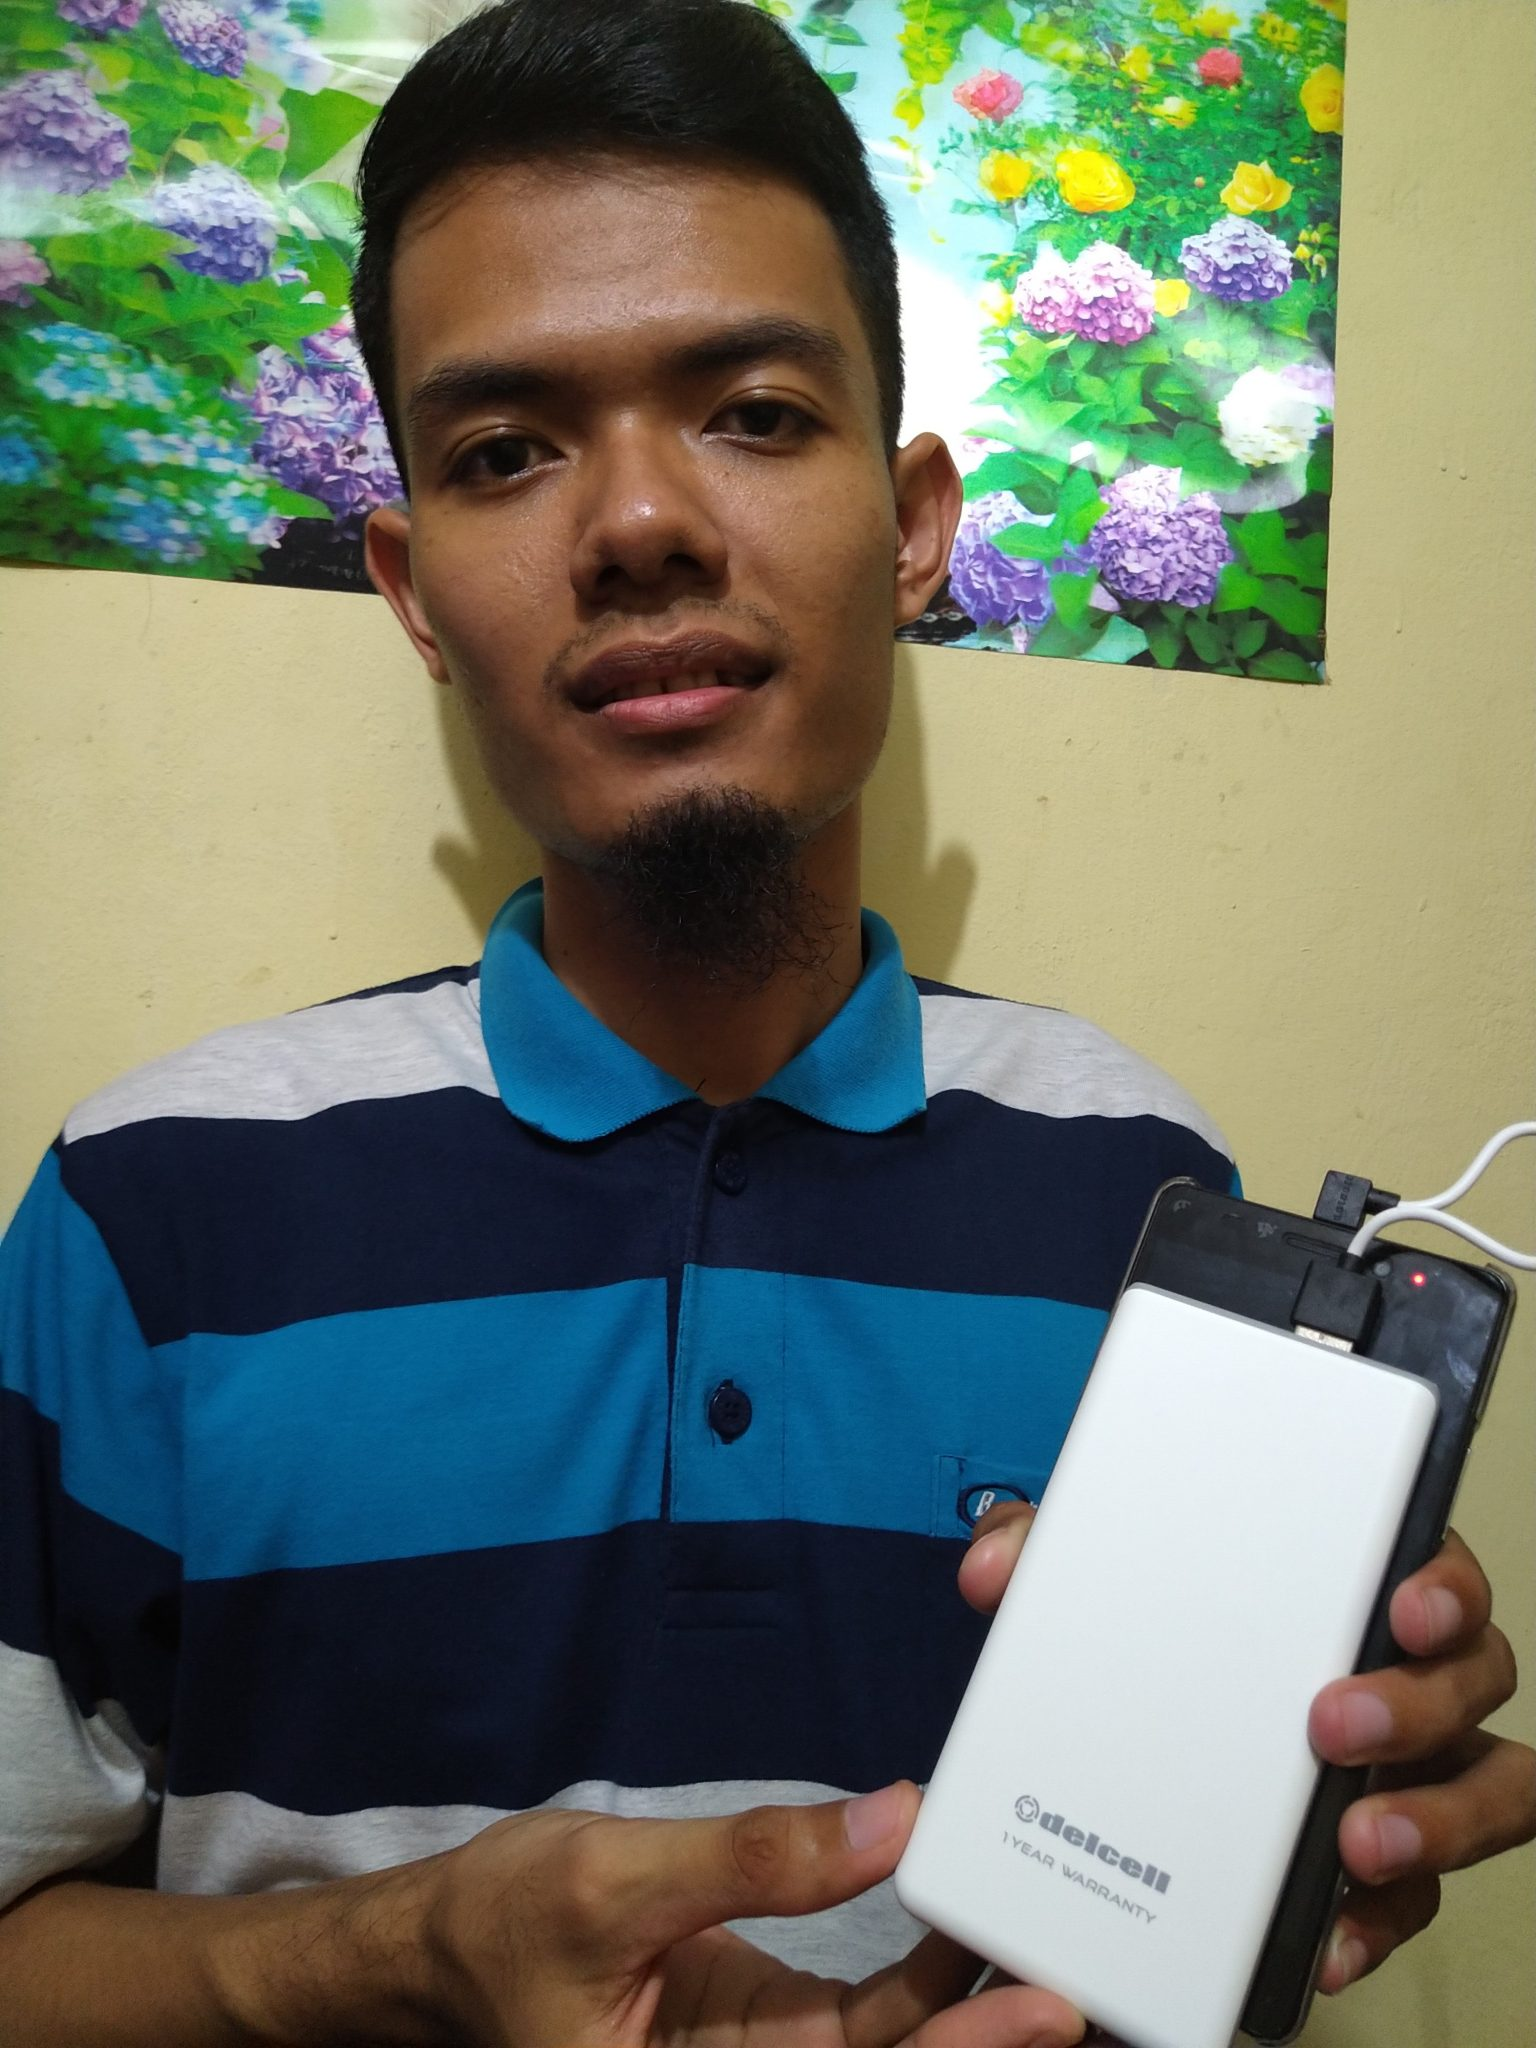 Smartphonemu Lowbet, Delcell Powerbank Pluto Solusinya